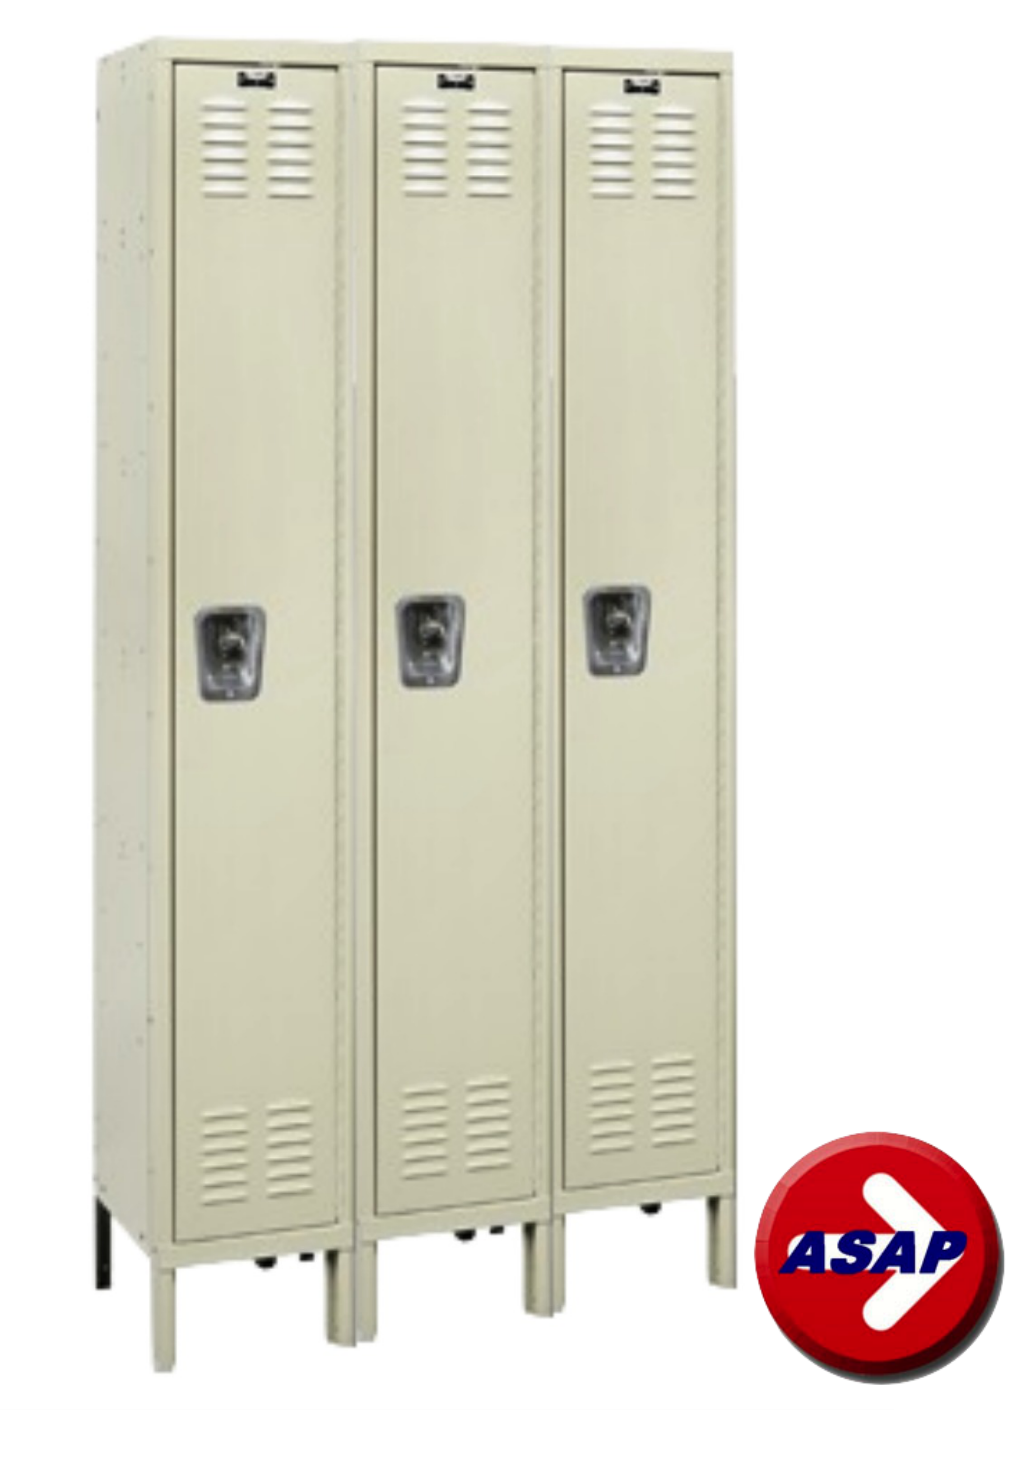 Brilliant Penco Lockers for Best Locker Choice: Penco Lockers | 2 Tier Lockers | Penco Industries